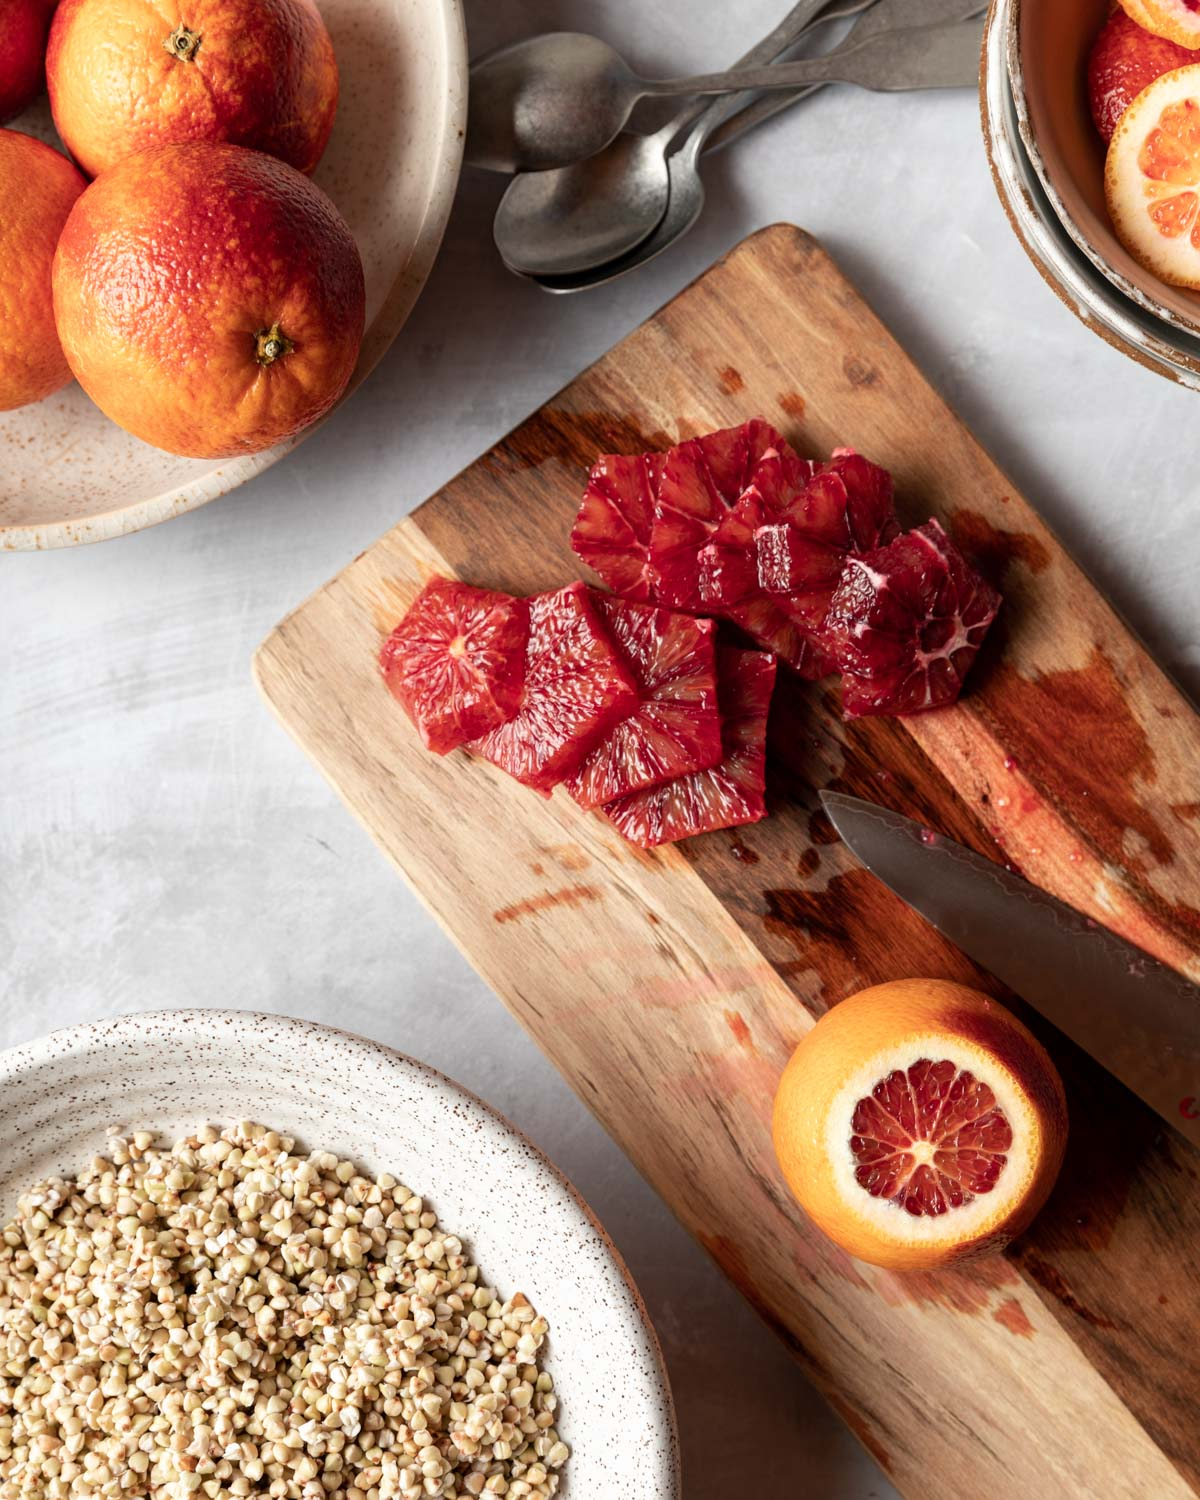 Vibrant blood oranges are peeled and sliced before being placed on top of buckwheat breakfast bowls.